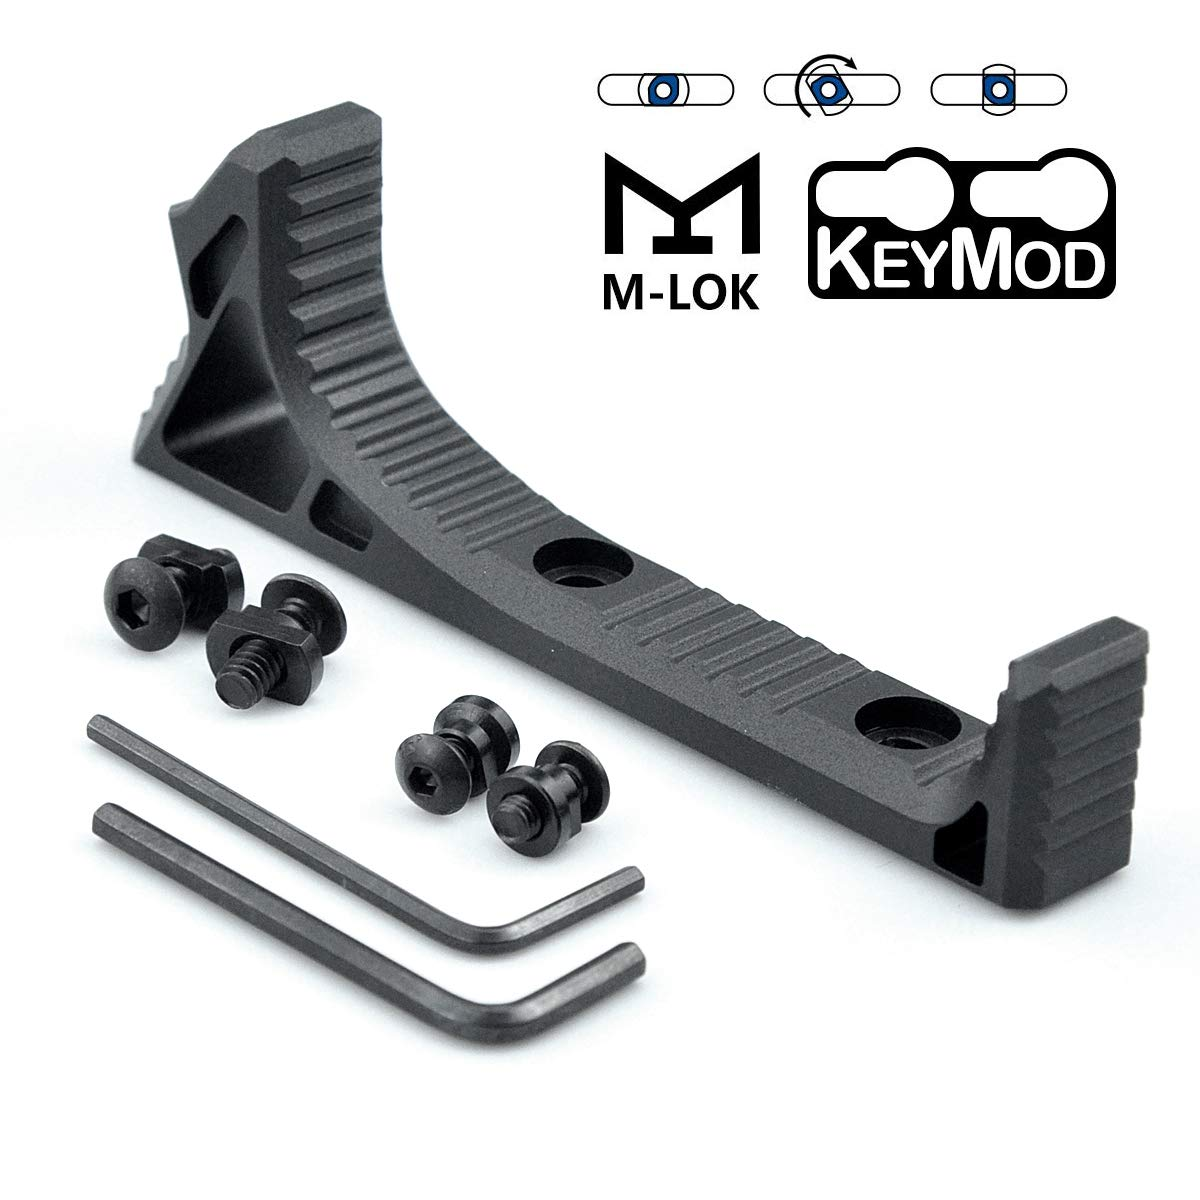 Binsin Aluminum Picatinny Rail Section Accessories for Mlok Keymod System by Binsin